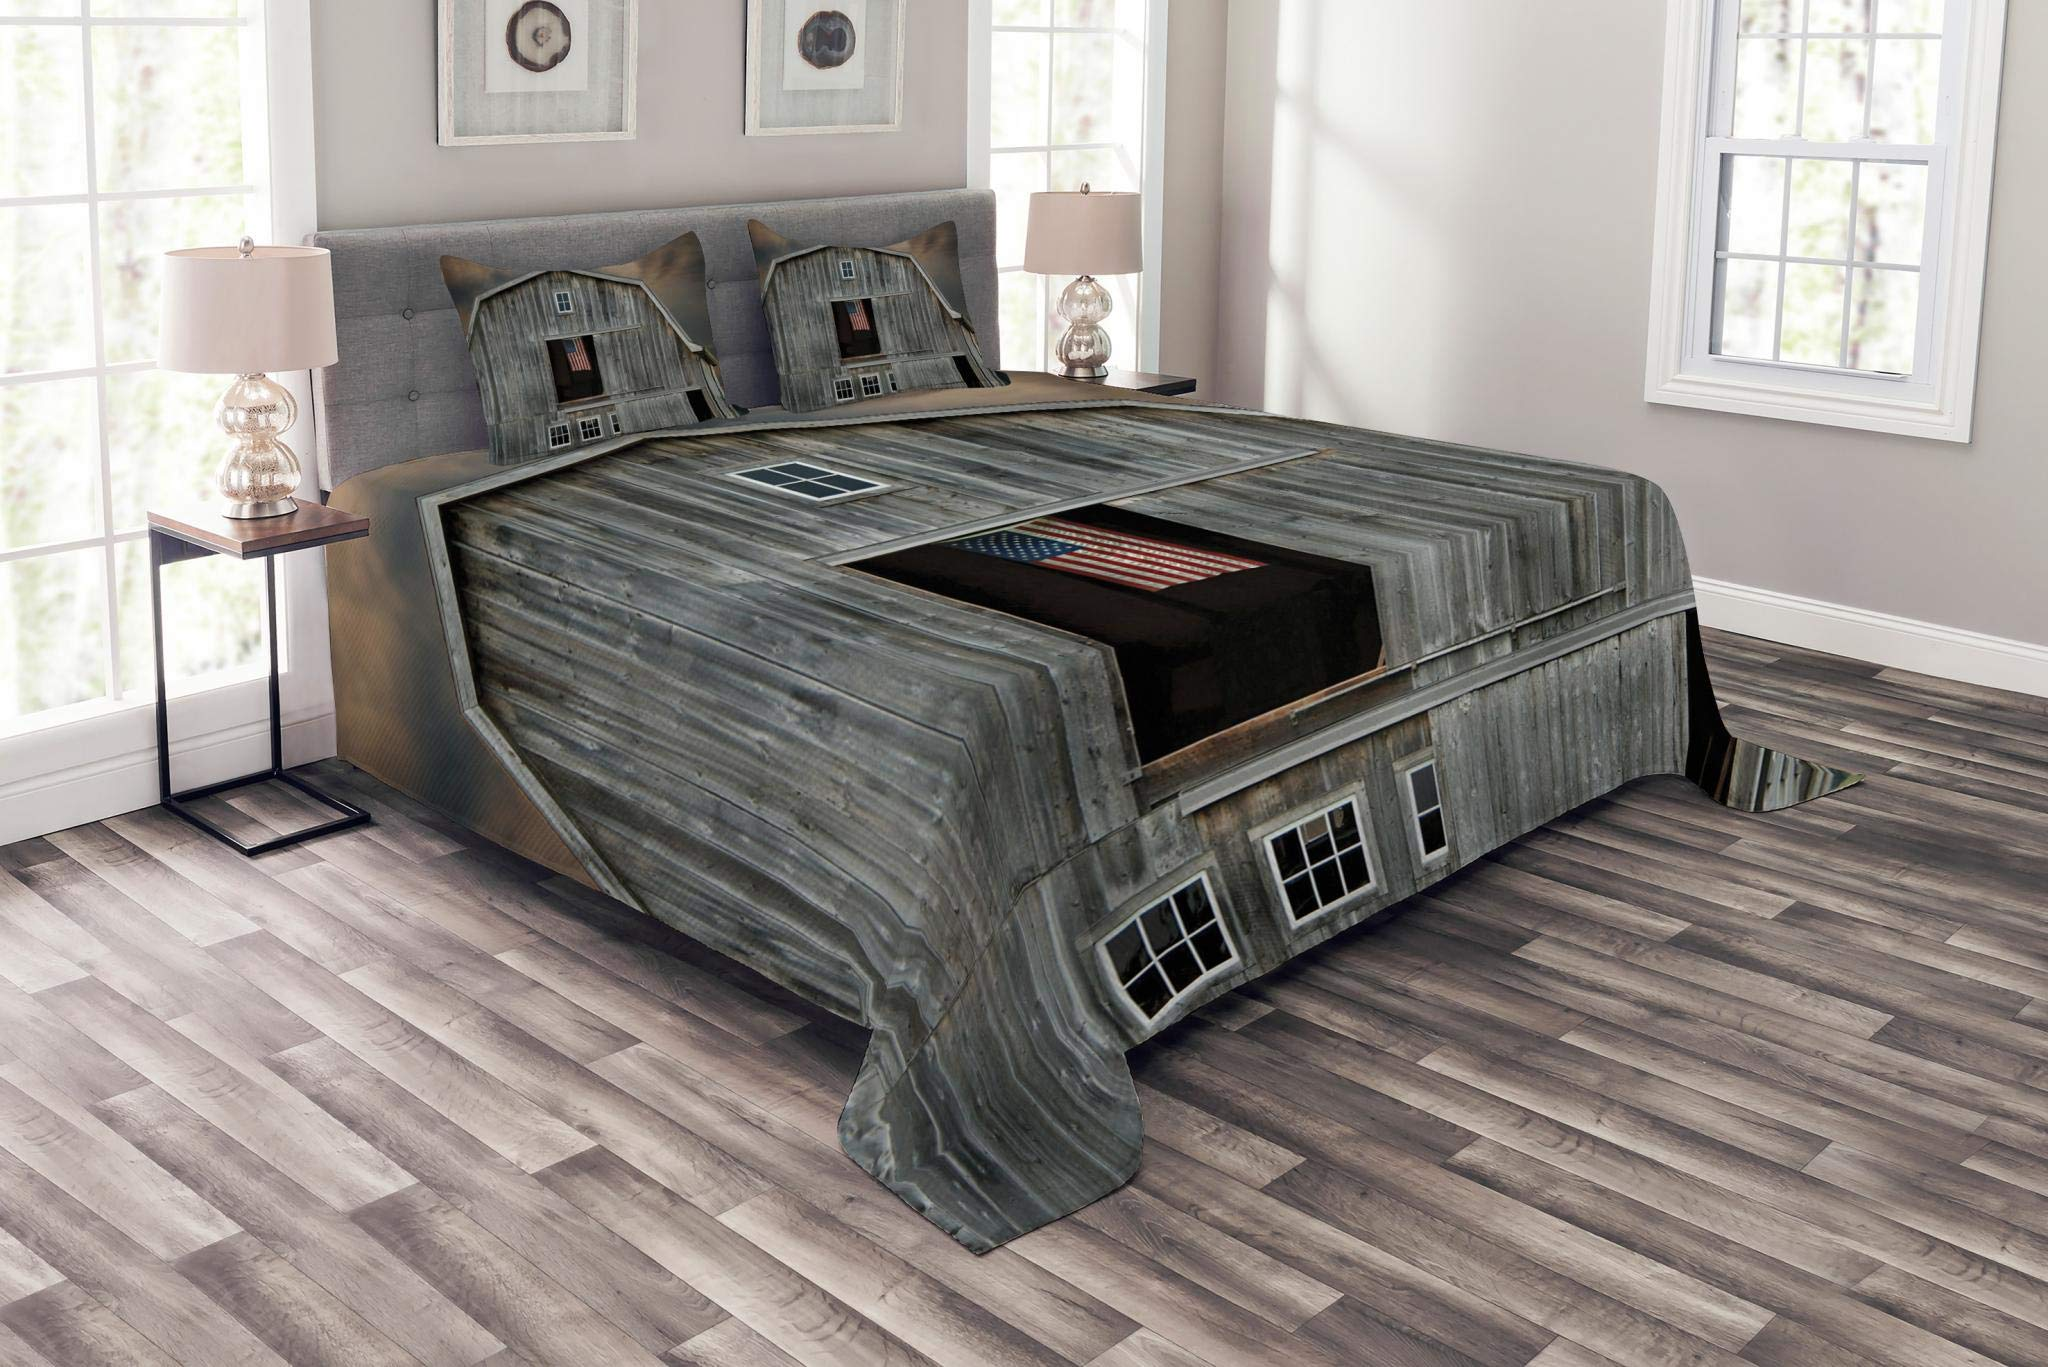 Lunarable American Flag Bedspread Set Queen Size, American Flag Flying in Hayloft Window Wooden Old House Dark Evening View, Decorative Quilted 3 Piece Coverlet Set with 2 Pillow Shams, Grey Tan Black